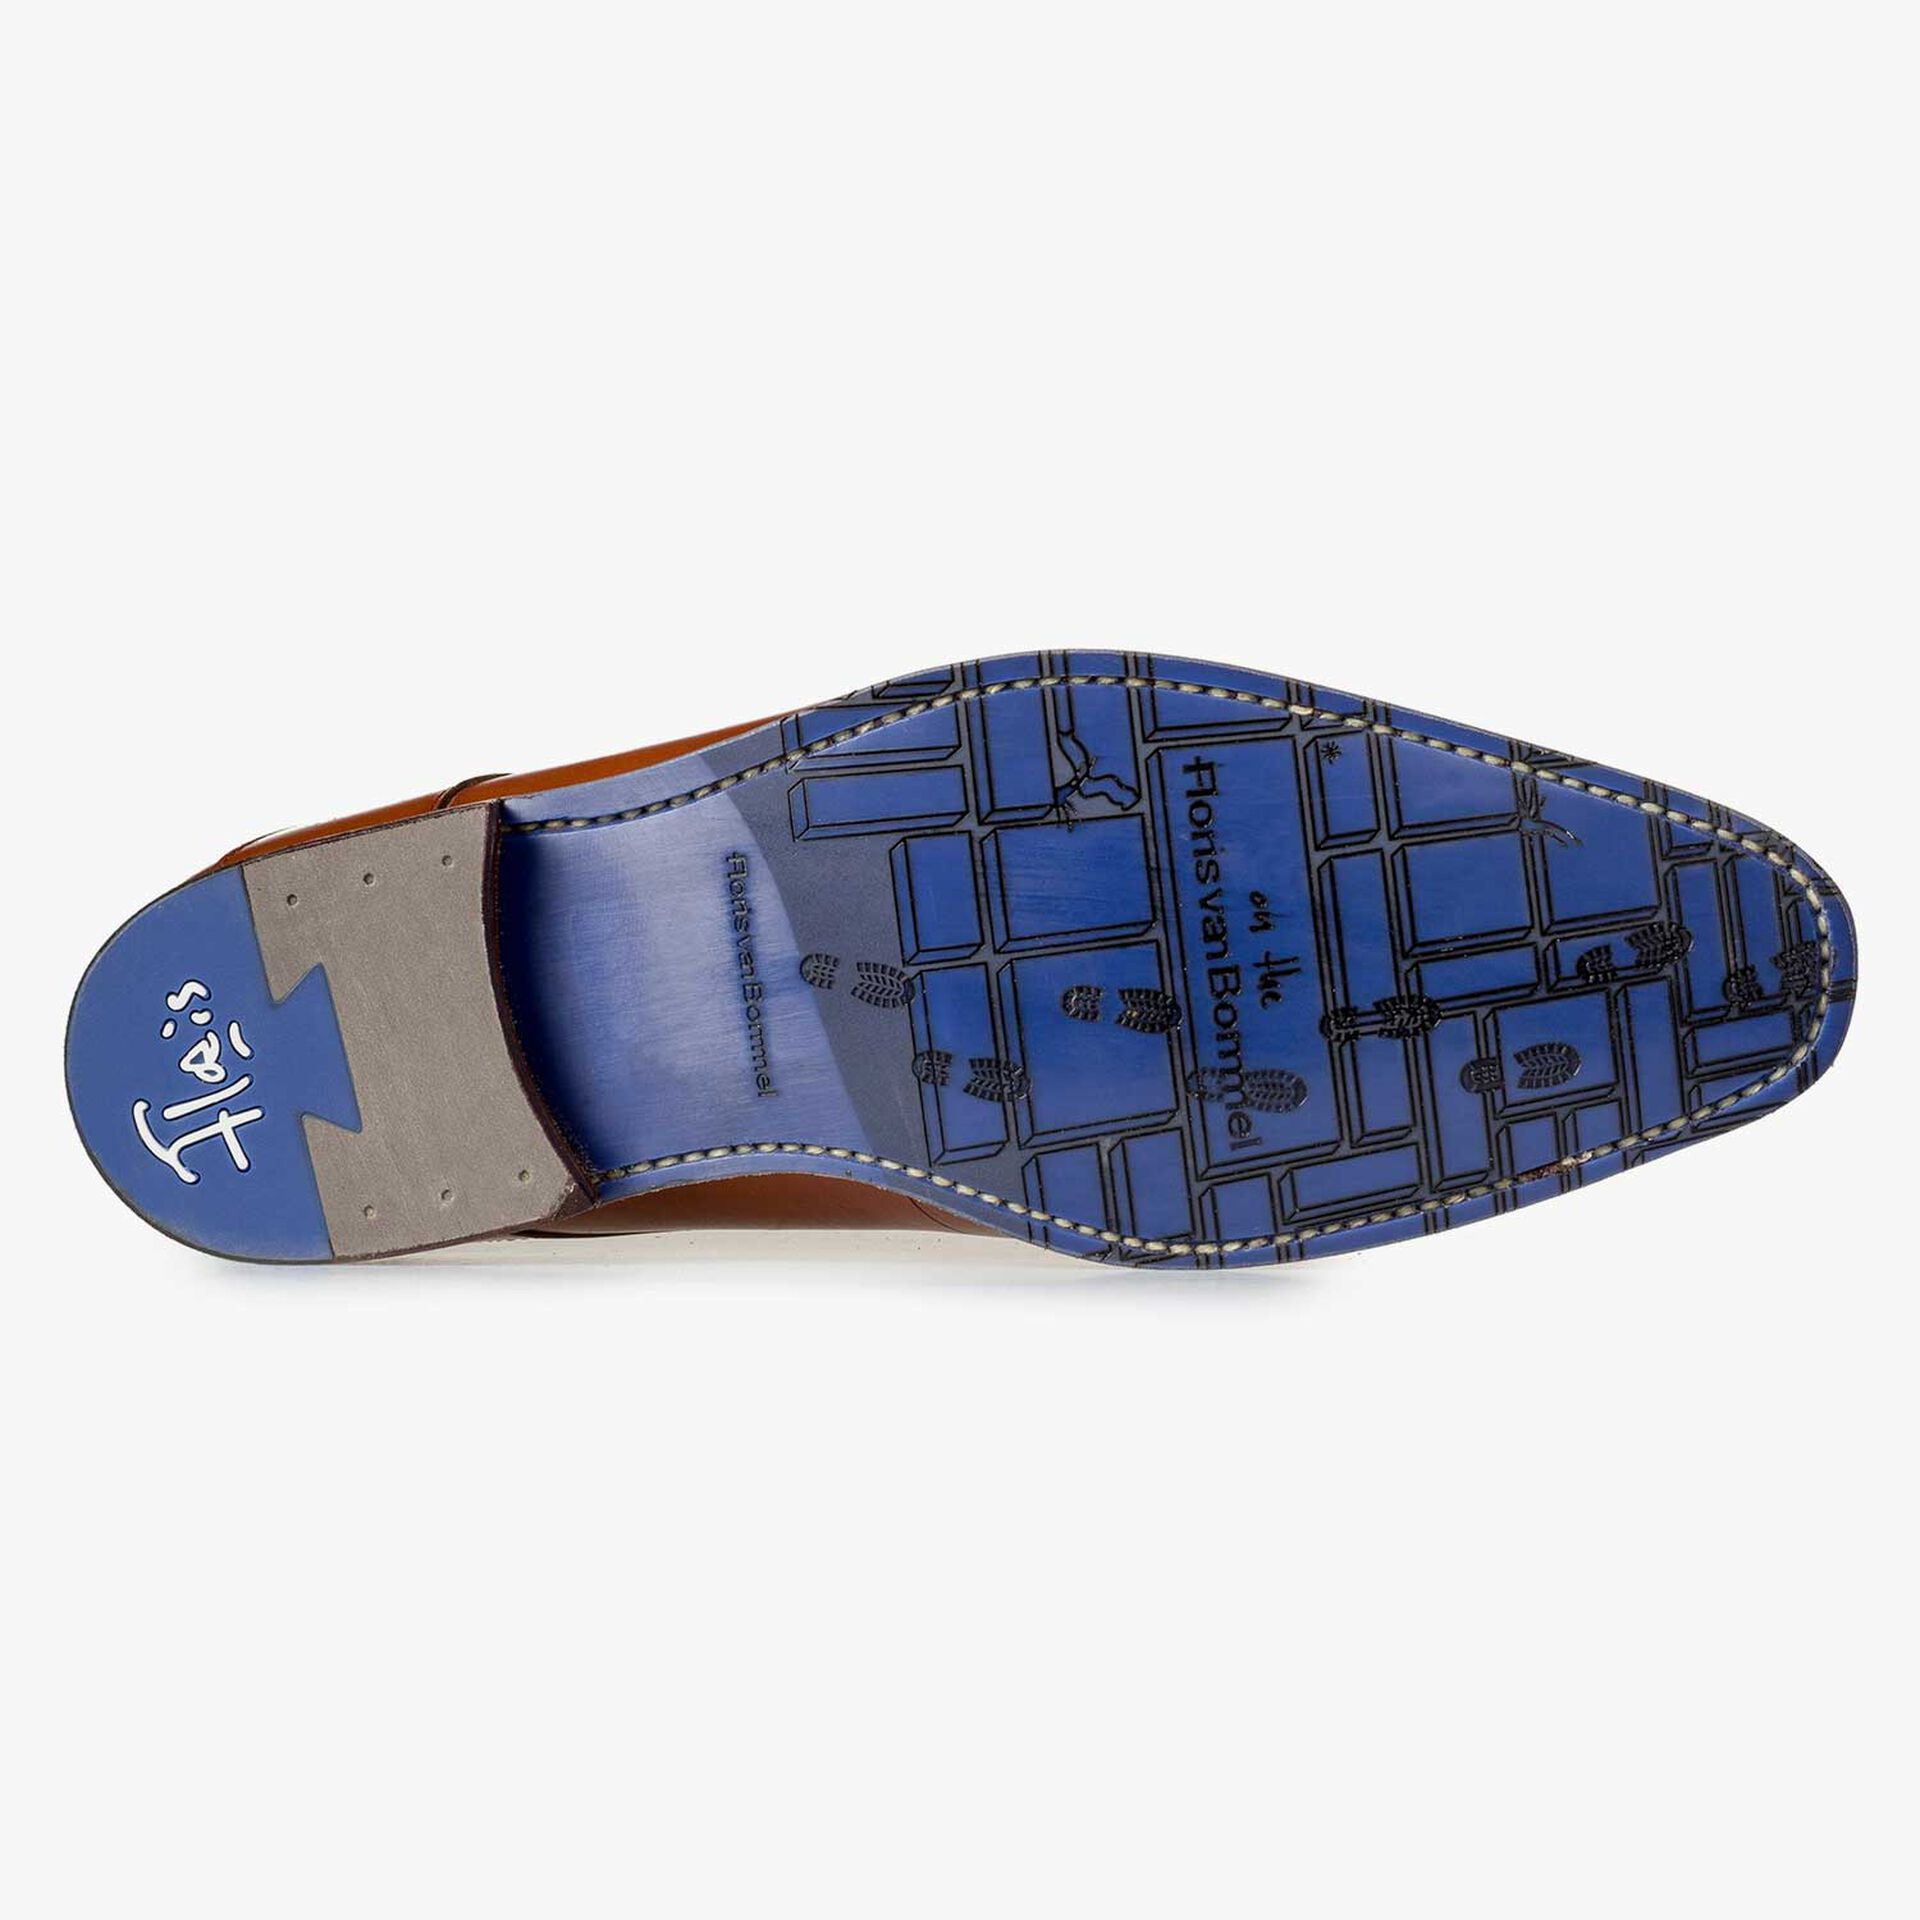 Cognac-coloured lace shoe with laser-cut print